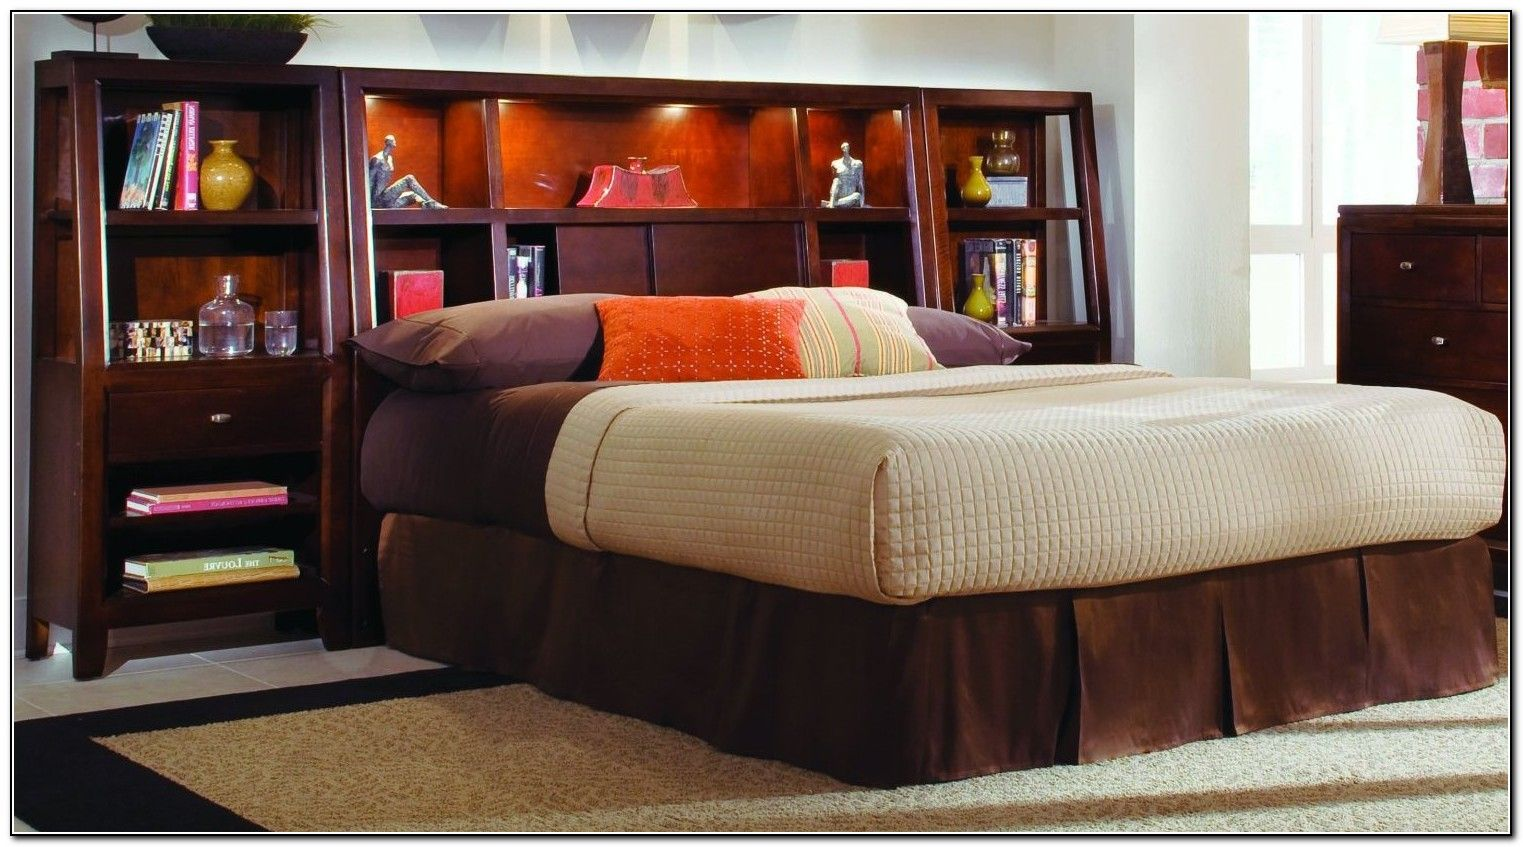 Pin By Joe Priest On Beds   Headboard With Shelves, King Size Bed